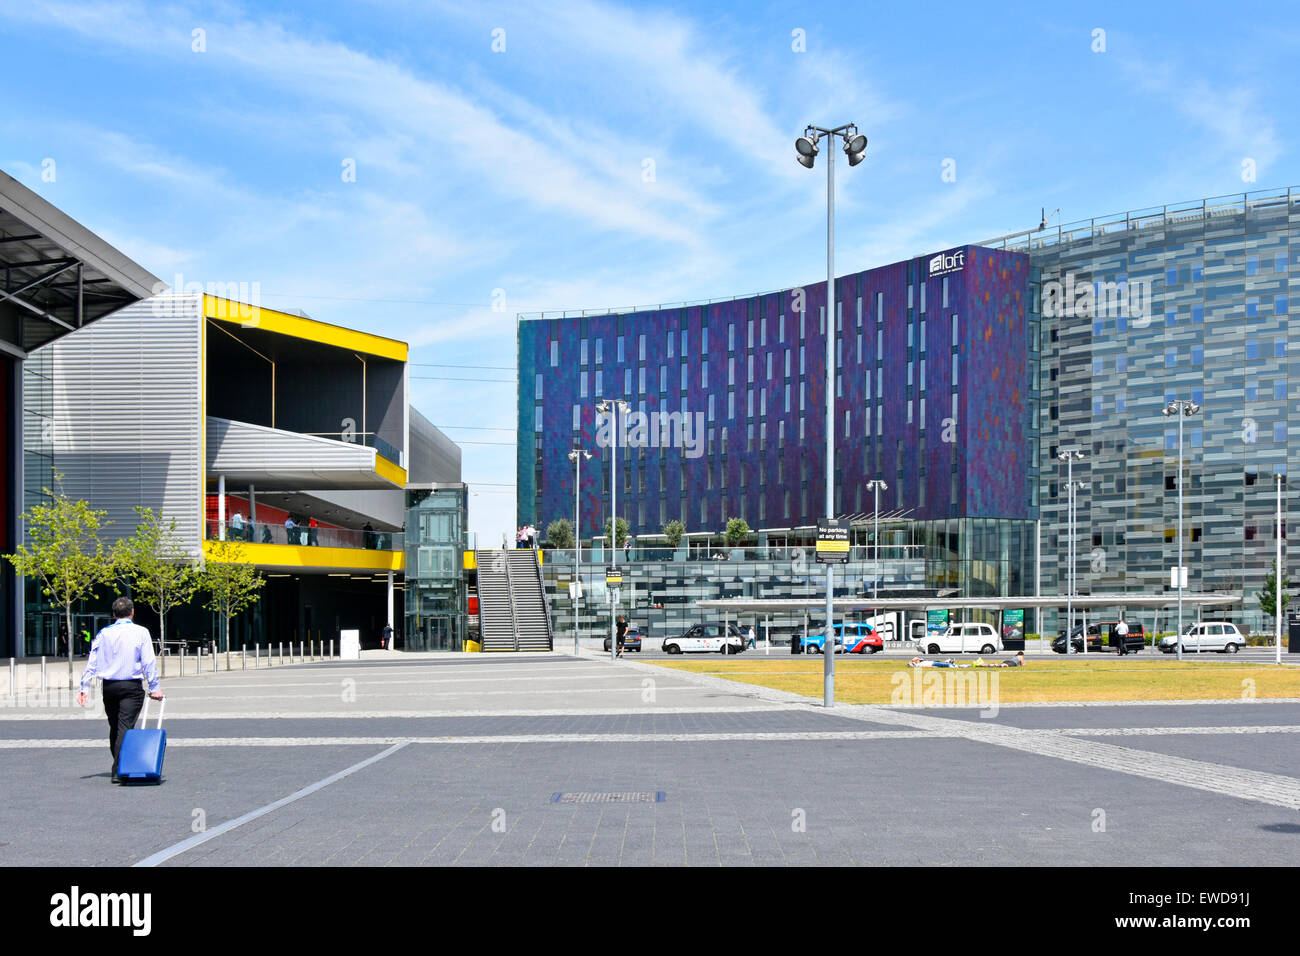 Business man walking towards exhibition hall eastern entrance of London Excel centre left yellow & adjacent - Stock Image